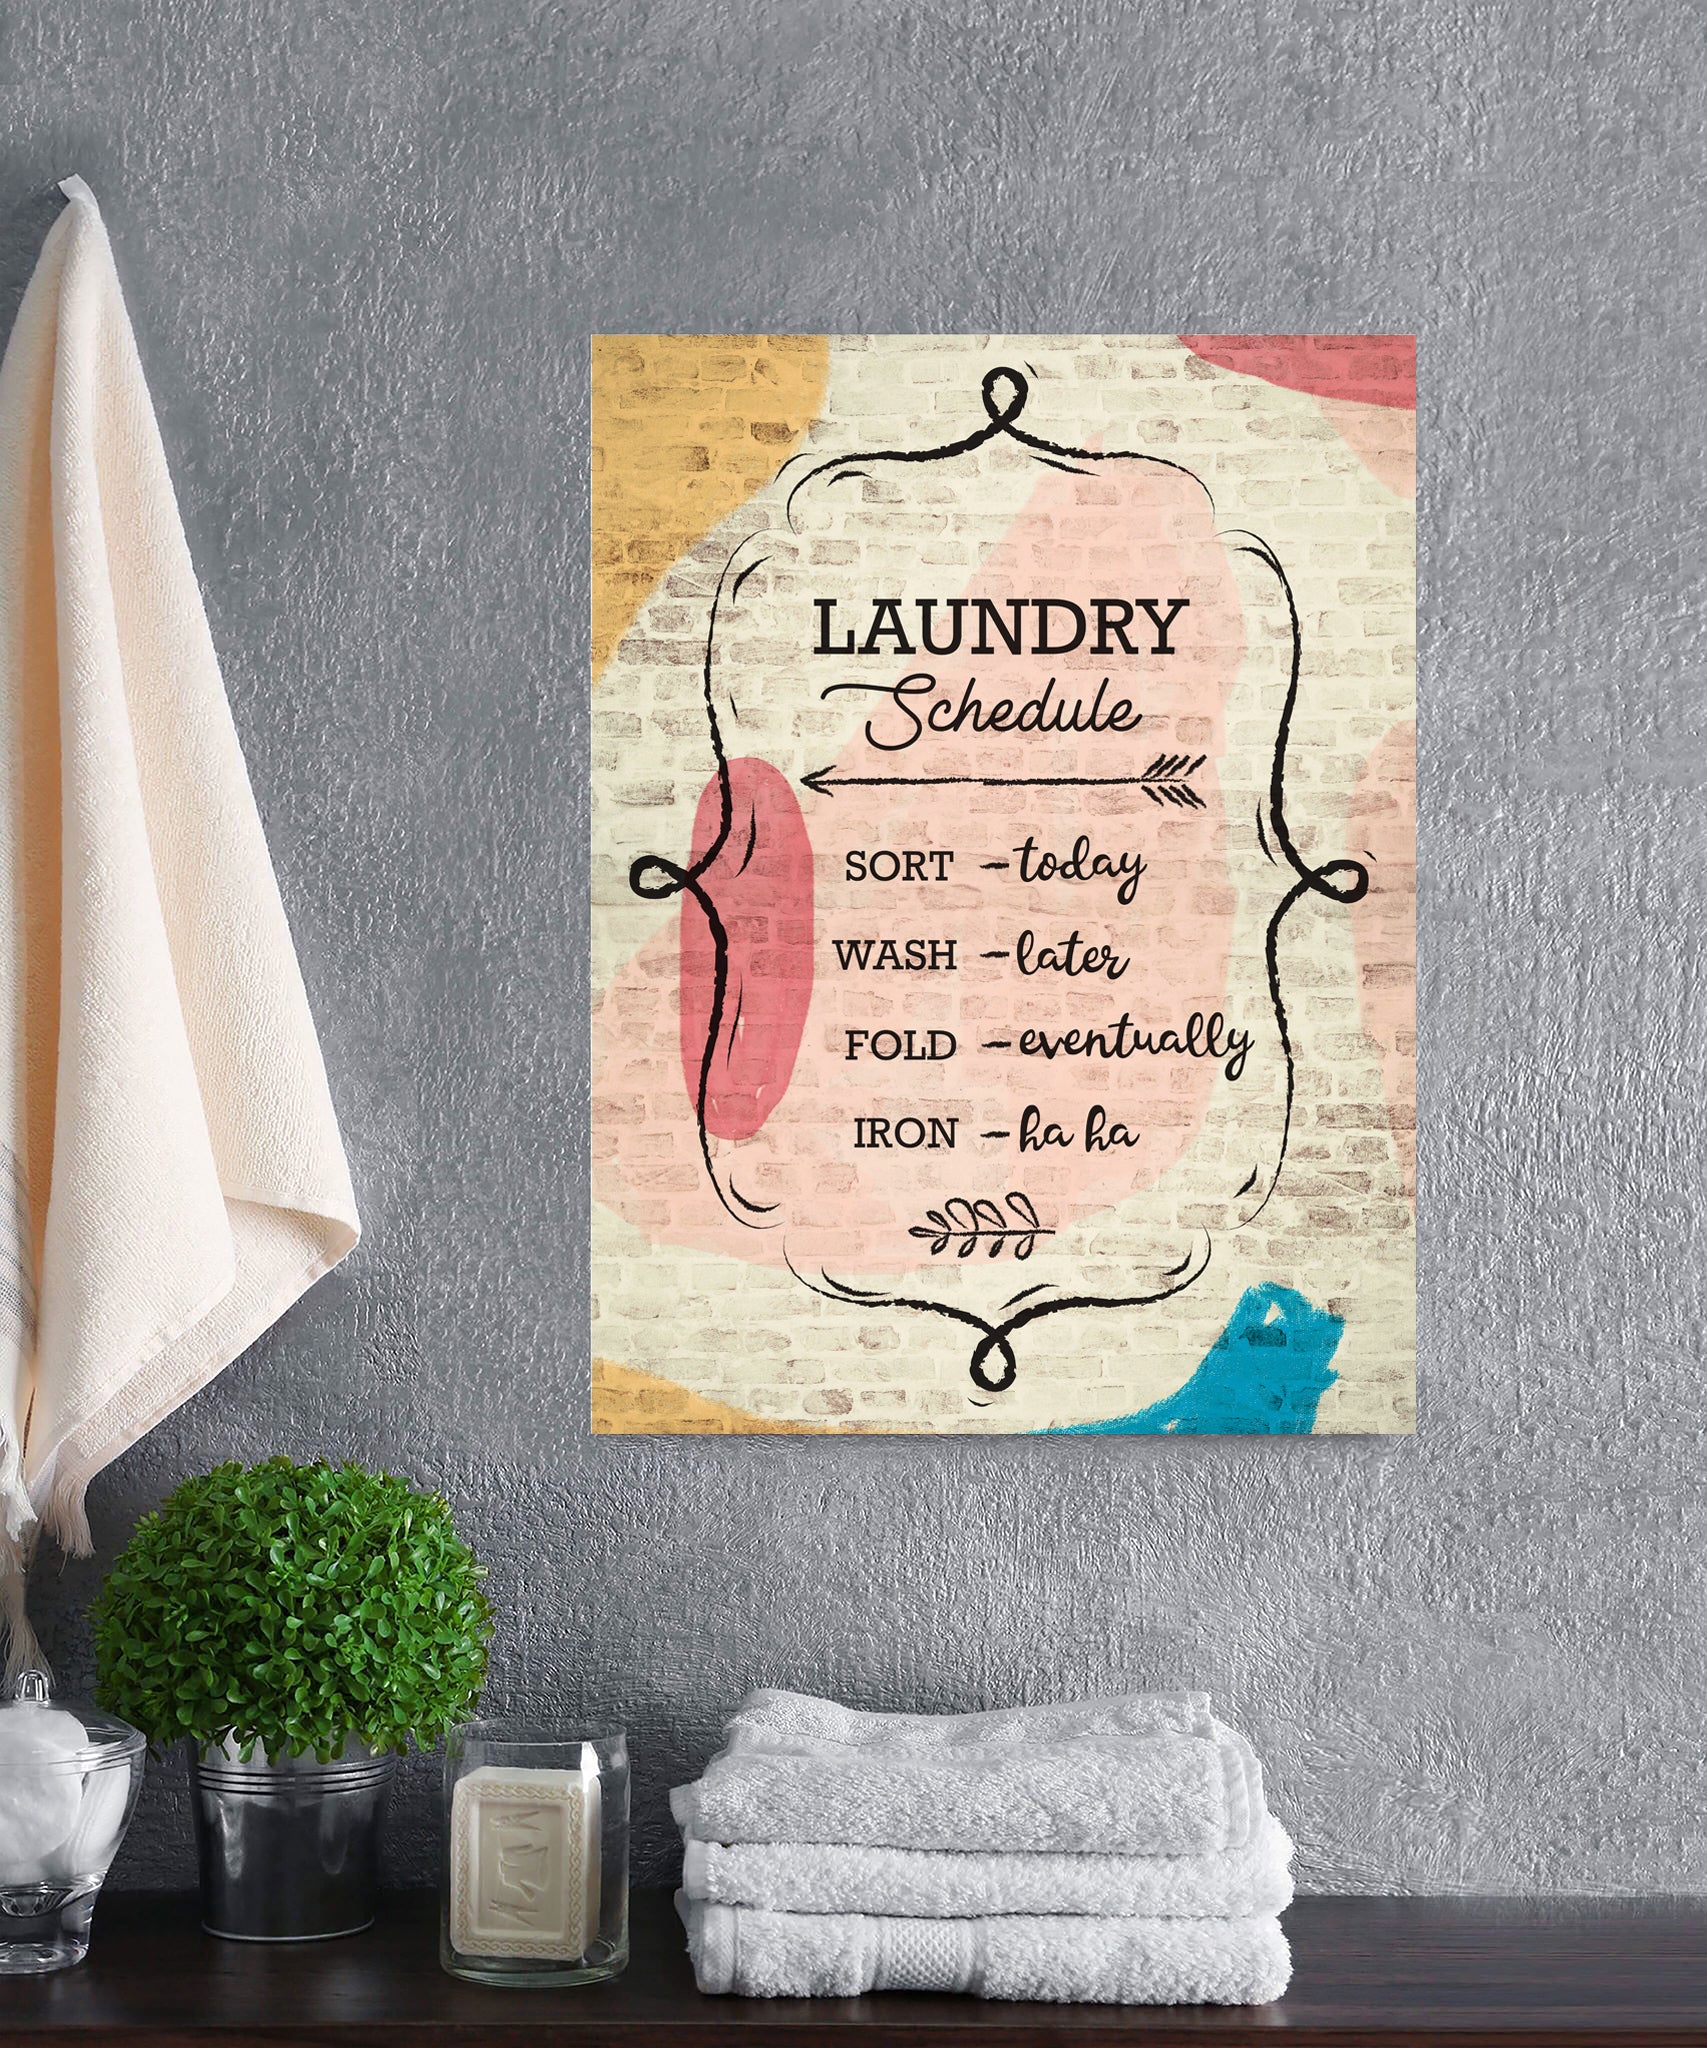 Laundry Room Wall Art: Laundry Schedule (Wood Frame Ready To Hang)